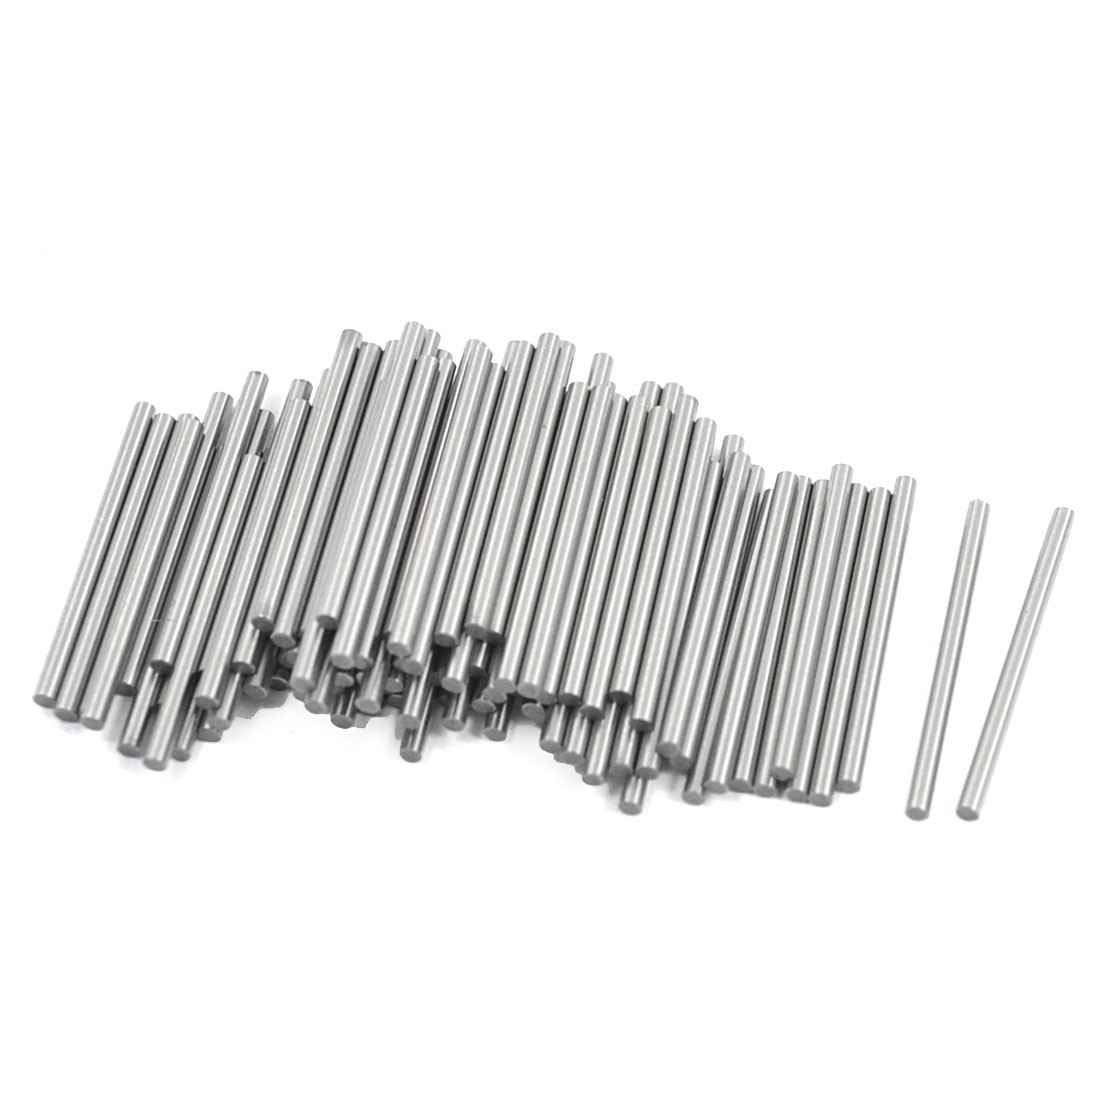 100 Pcs Stainless Steel 1.25mm x 19.8mm Parallel Dowel Pins Fasten Elements Silver Tone